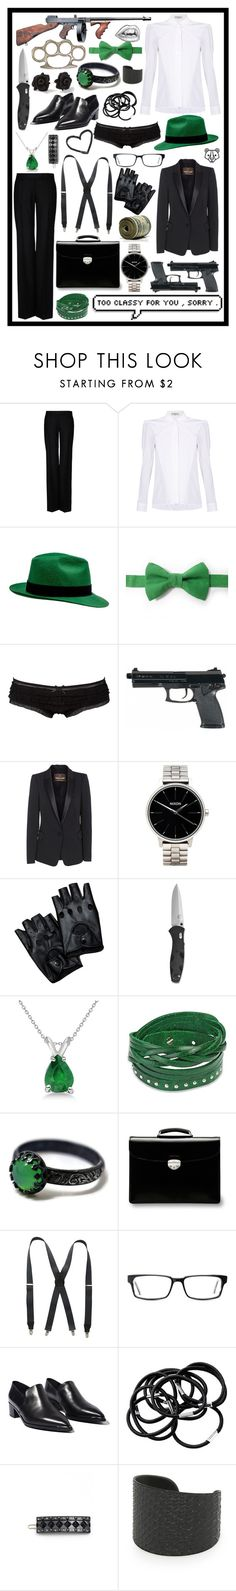 """""""she's got claws"""" by cupa1213 ❤ liked on Polyvore featuring TommyGuns, STELLA McCARTNEY, Balenciaga, Charlotte Russe, Roberto Cavalli, Nixon, Marc by Marc Jacobs, Allurez, West Coast Jewelry and Asprey"""